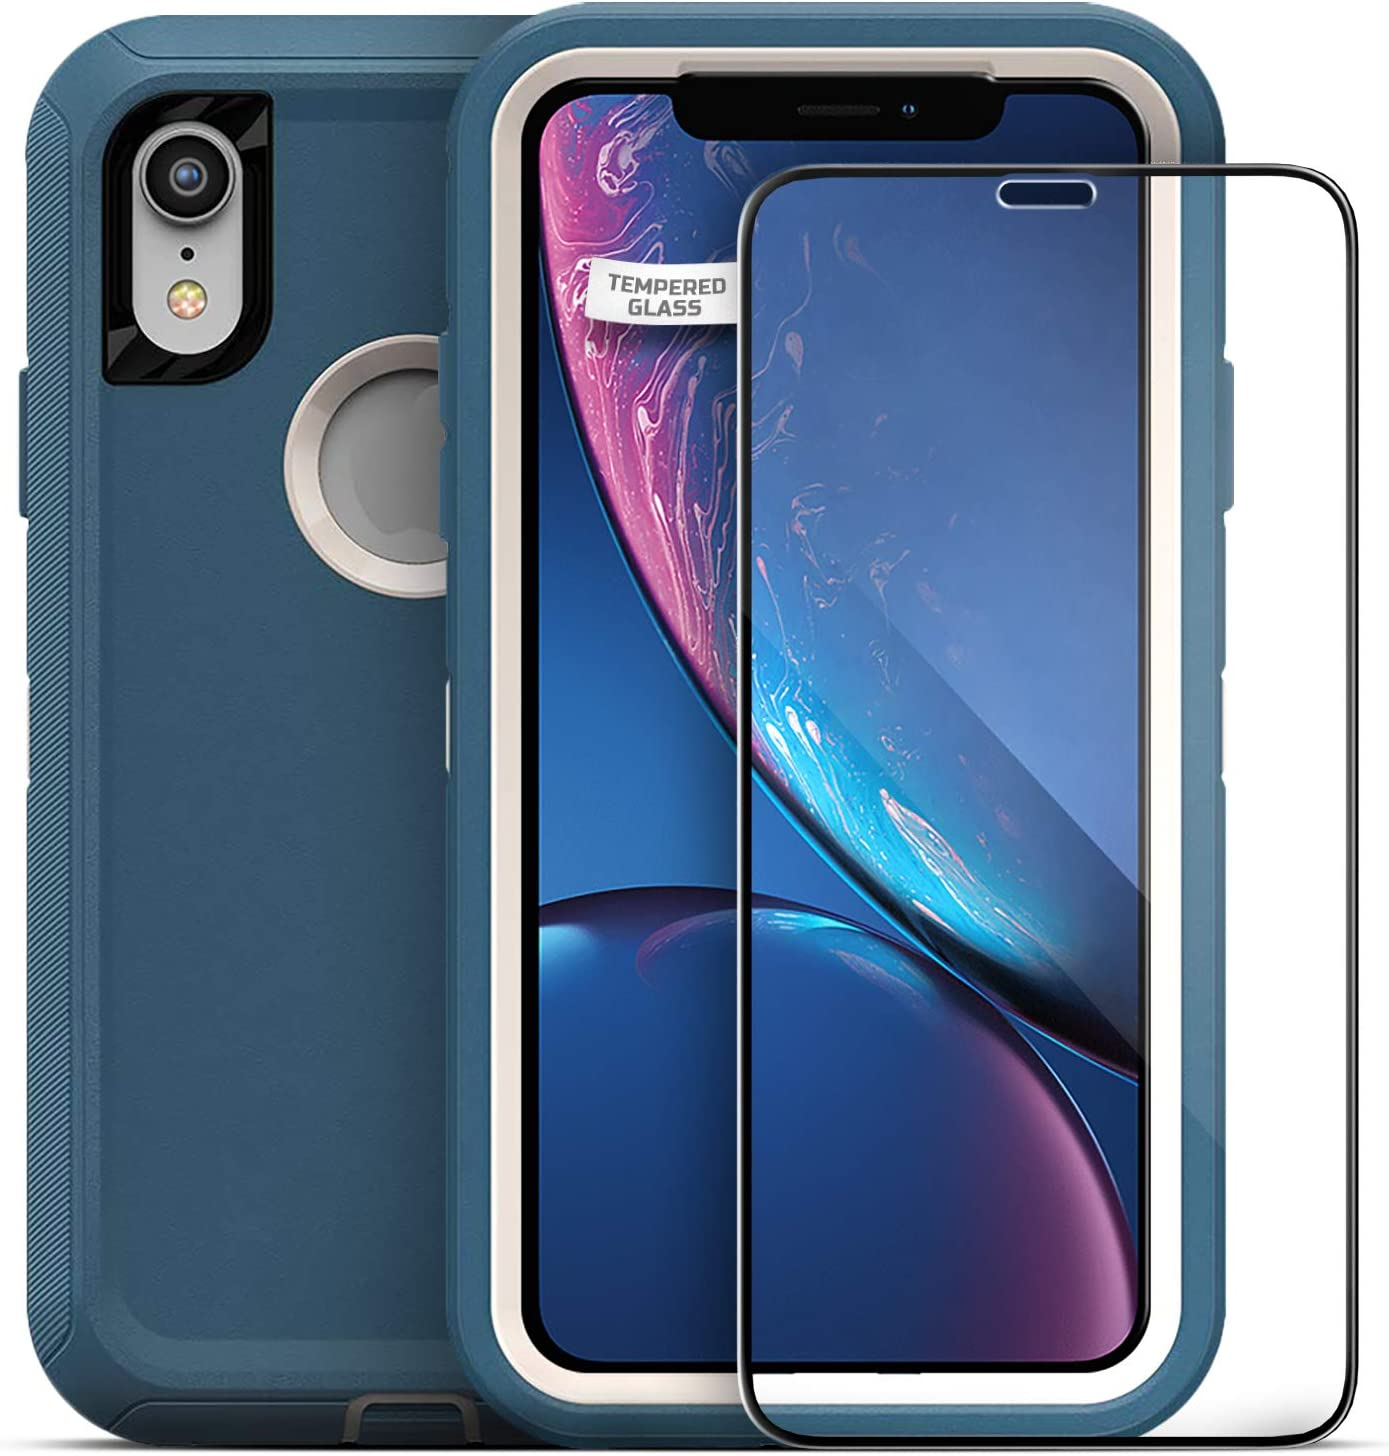 "Magglass Tempered Glass Screen Protector for Otterbox Defender Series - iPhone XR 6.1"" (Case is NOT Included)"